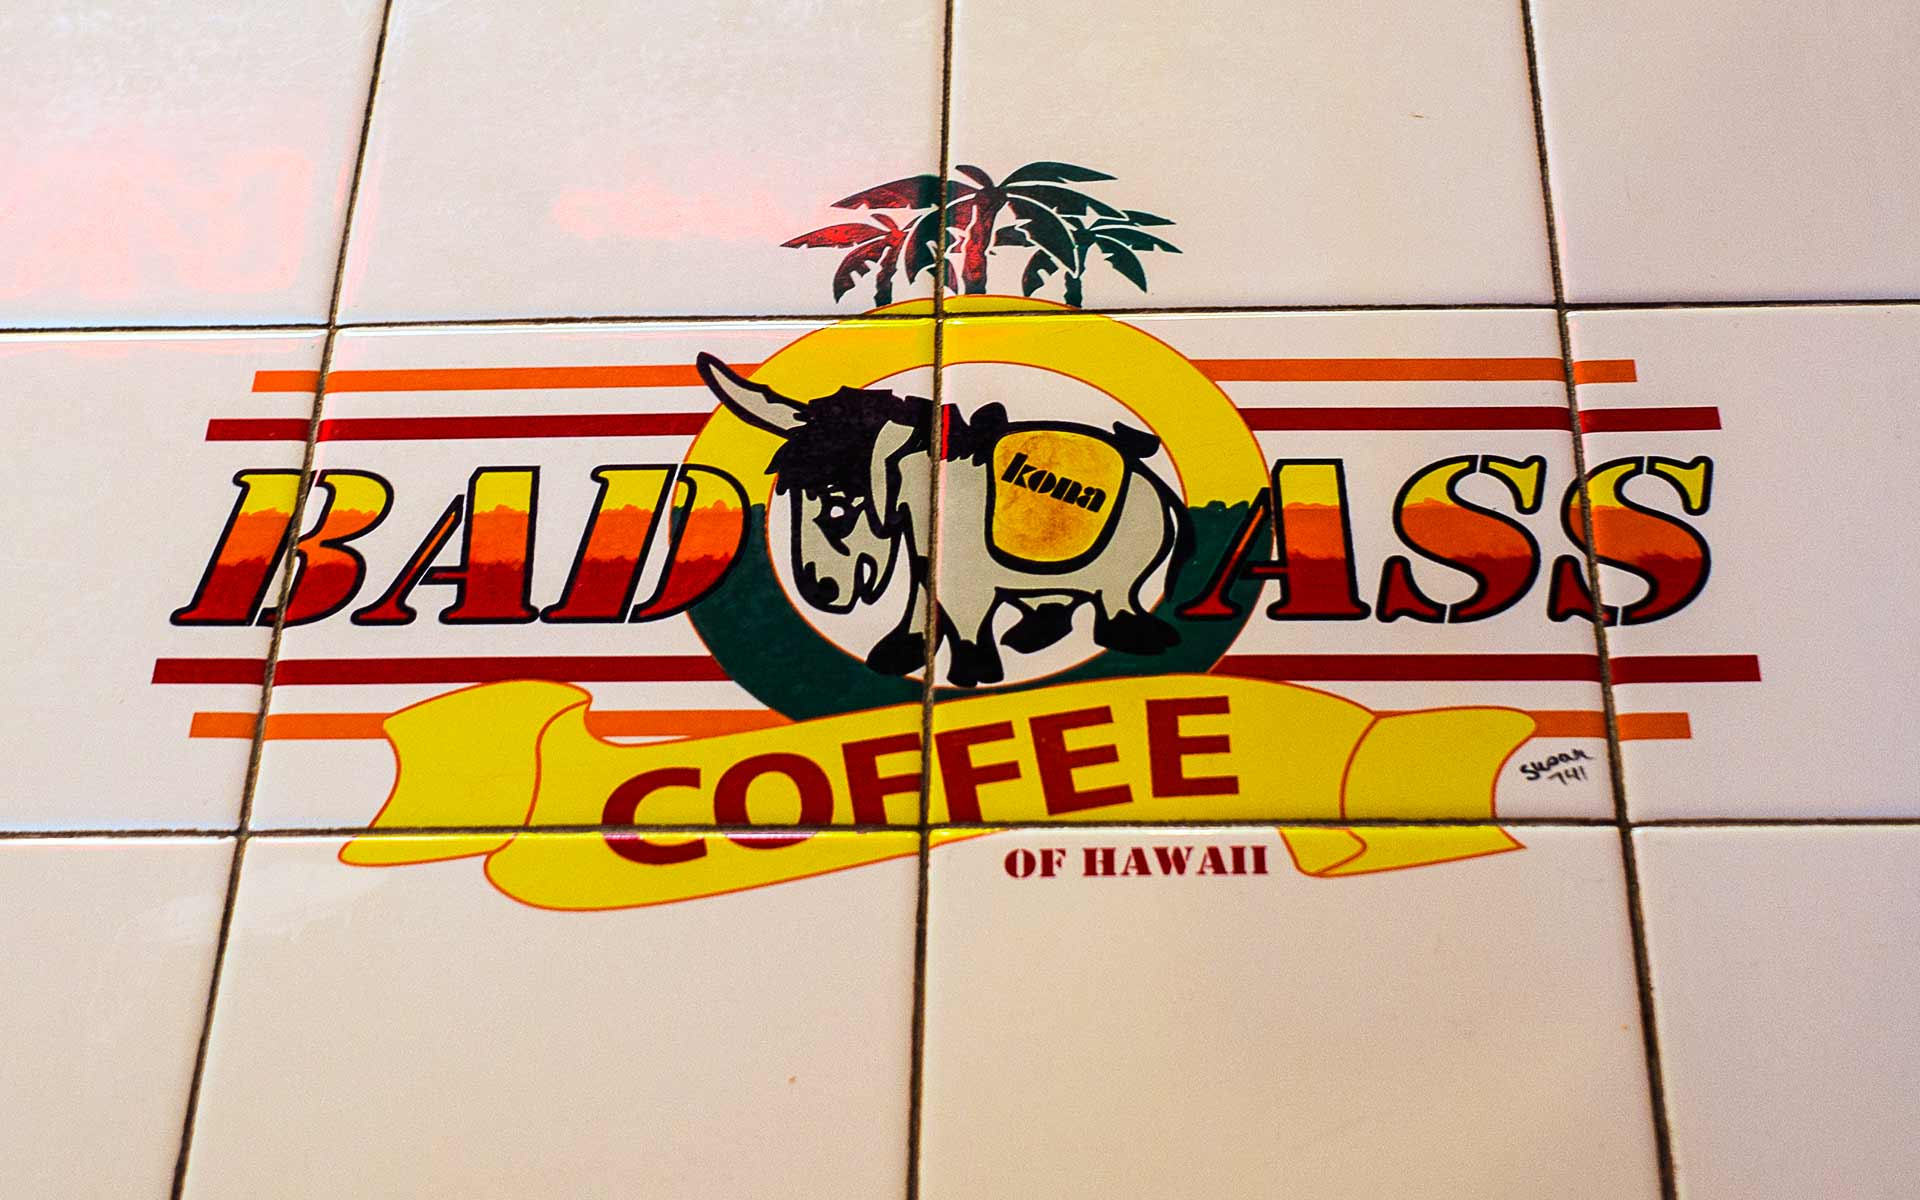 Bad Ass Coffee Shop